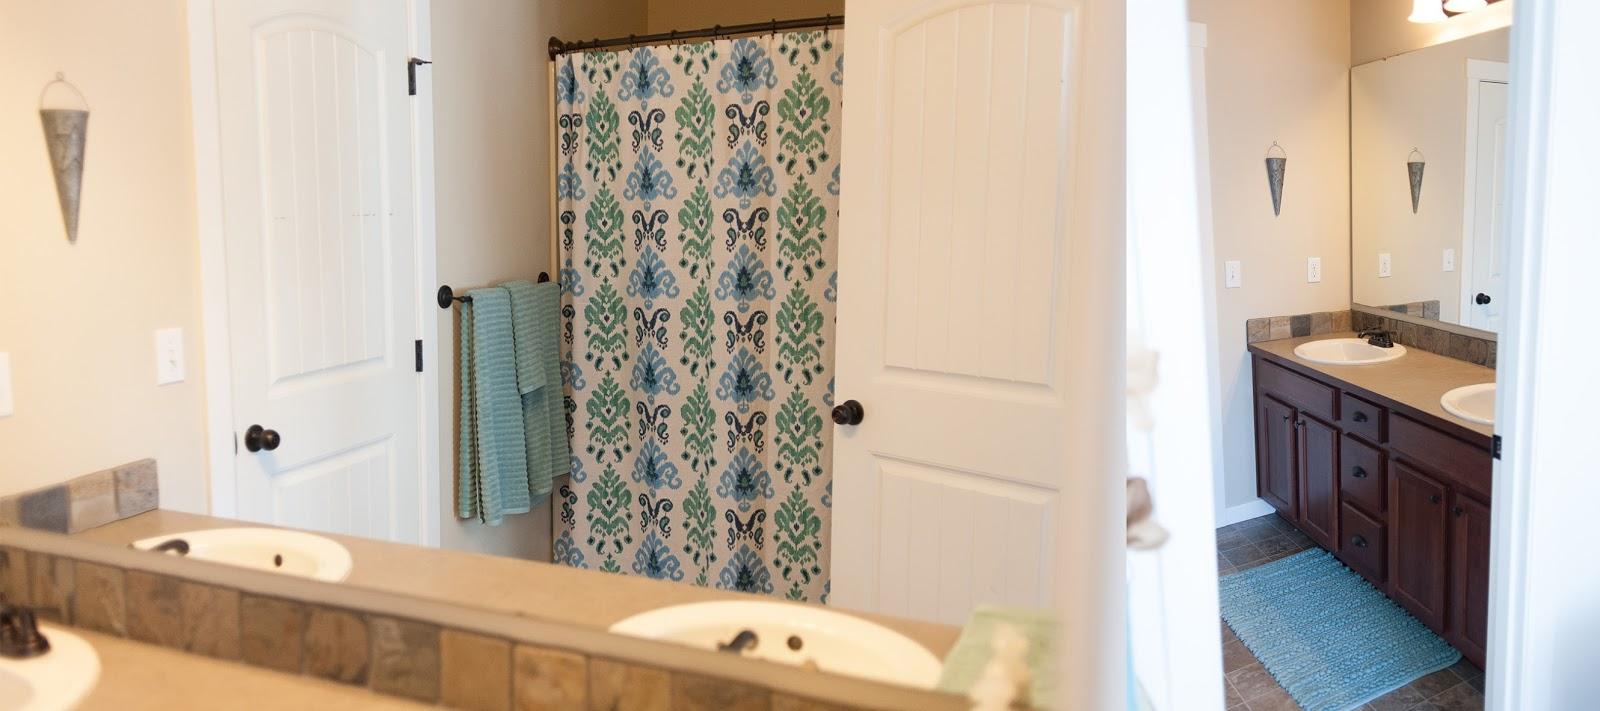 attached client bathroom